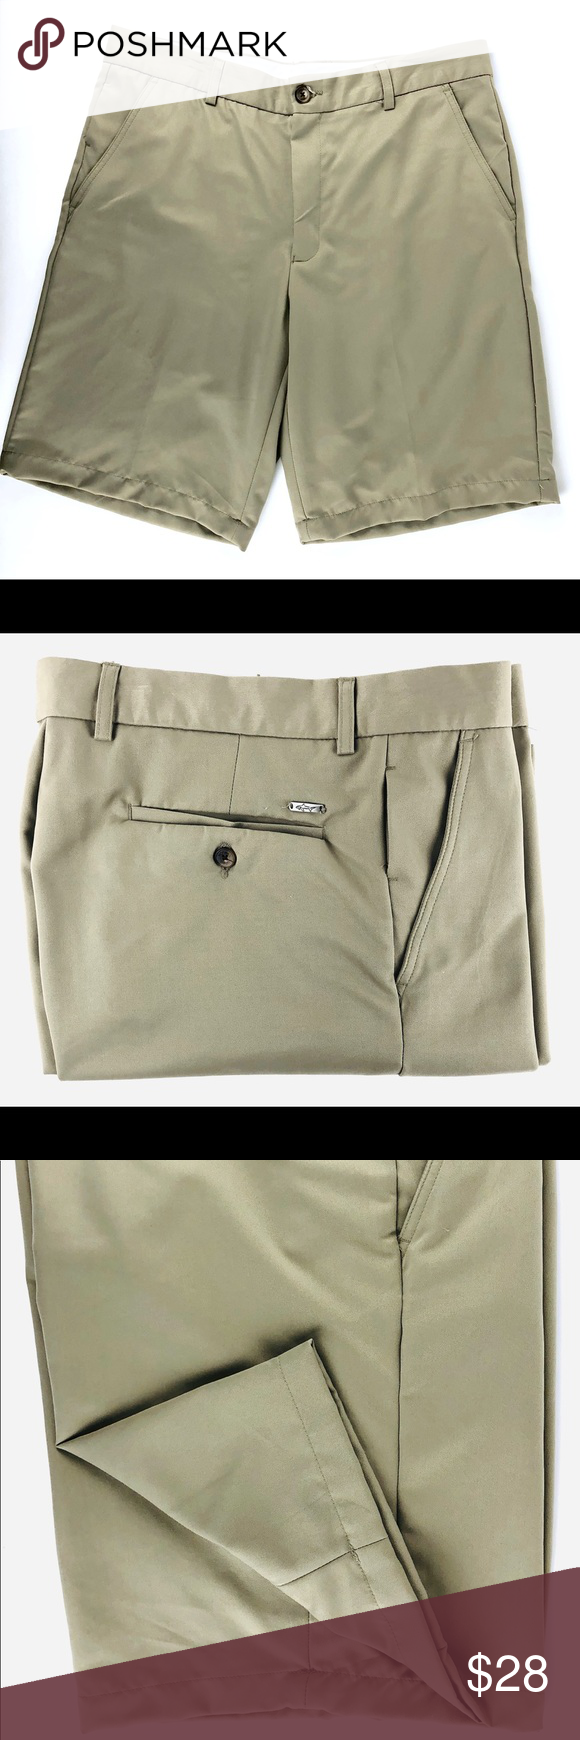 Greg Norman Chinos These Greg Norman Shorts Are Pre Owned And In Excellent Condition Size Features Size 36 Classic Chino Greg Norman Chinos Taupe Color